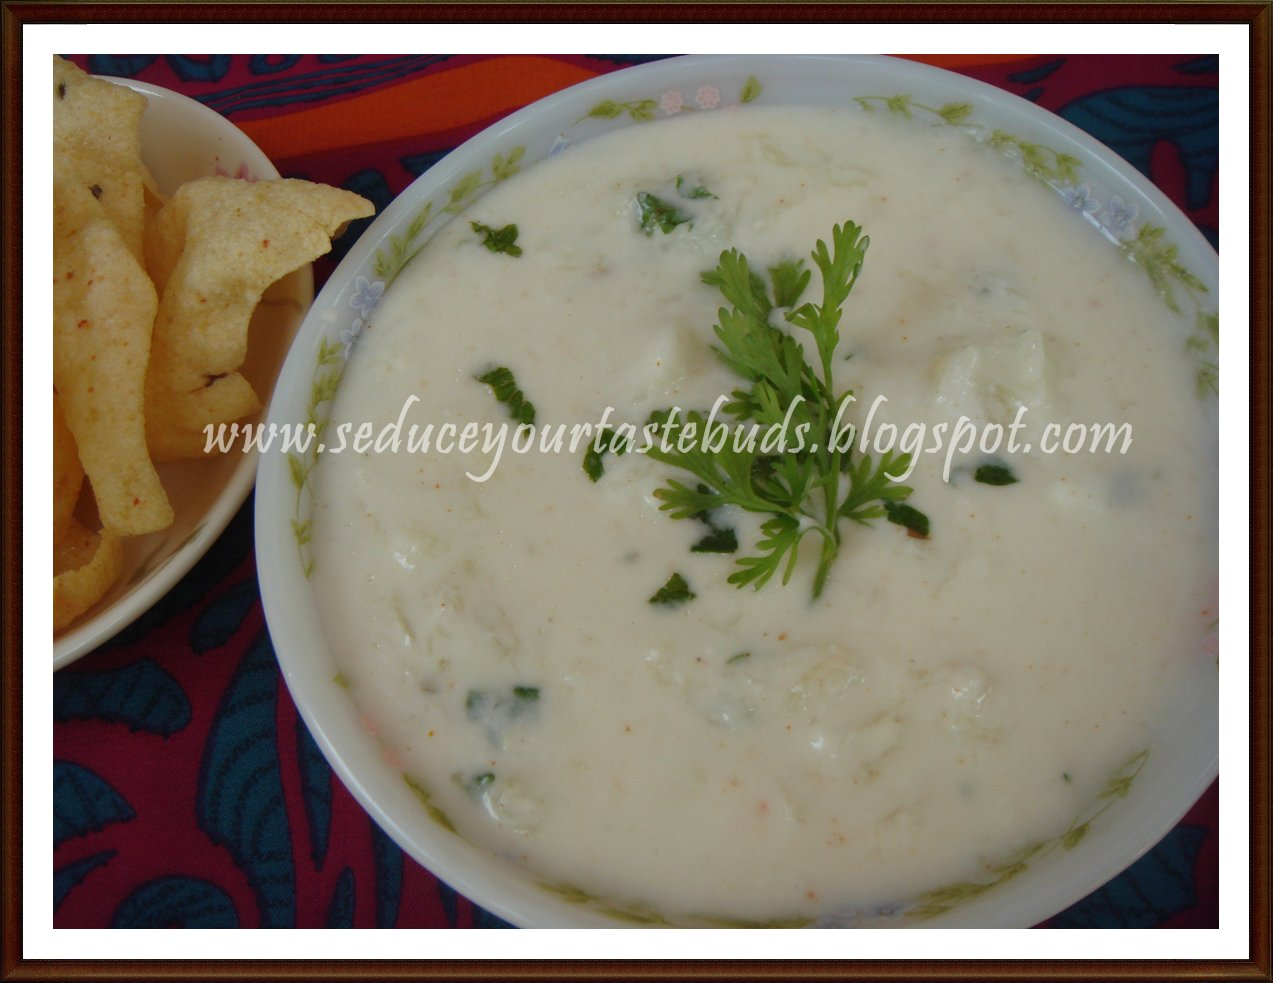 Jajeek iraqi cucumber yogurt dip for taste and create seduce set about bookmarking the recipes that i wanted to try and this jajeek recipe was the first it sounded so much similar to the indian cucumber raita forumfinder Images